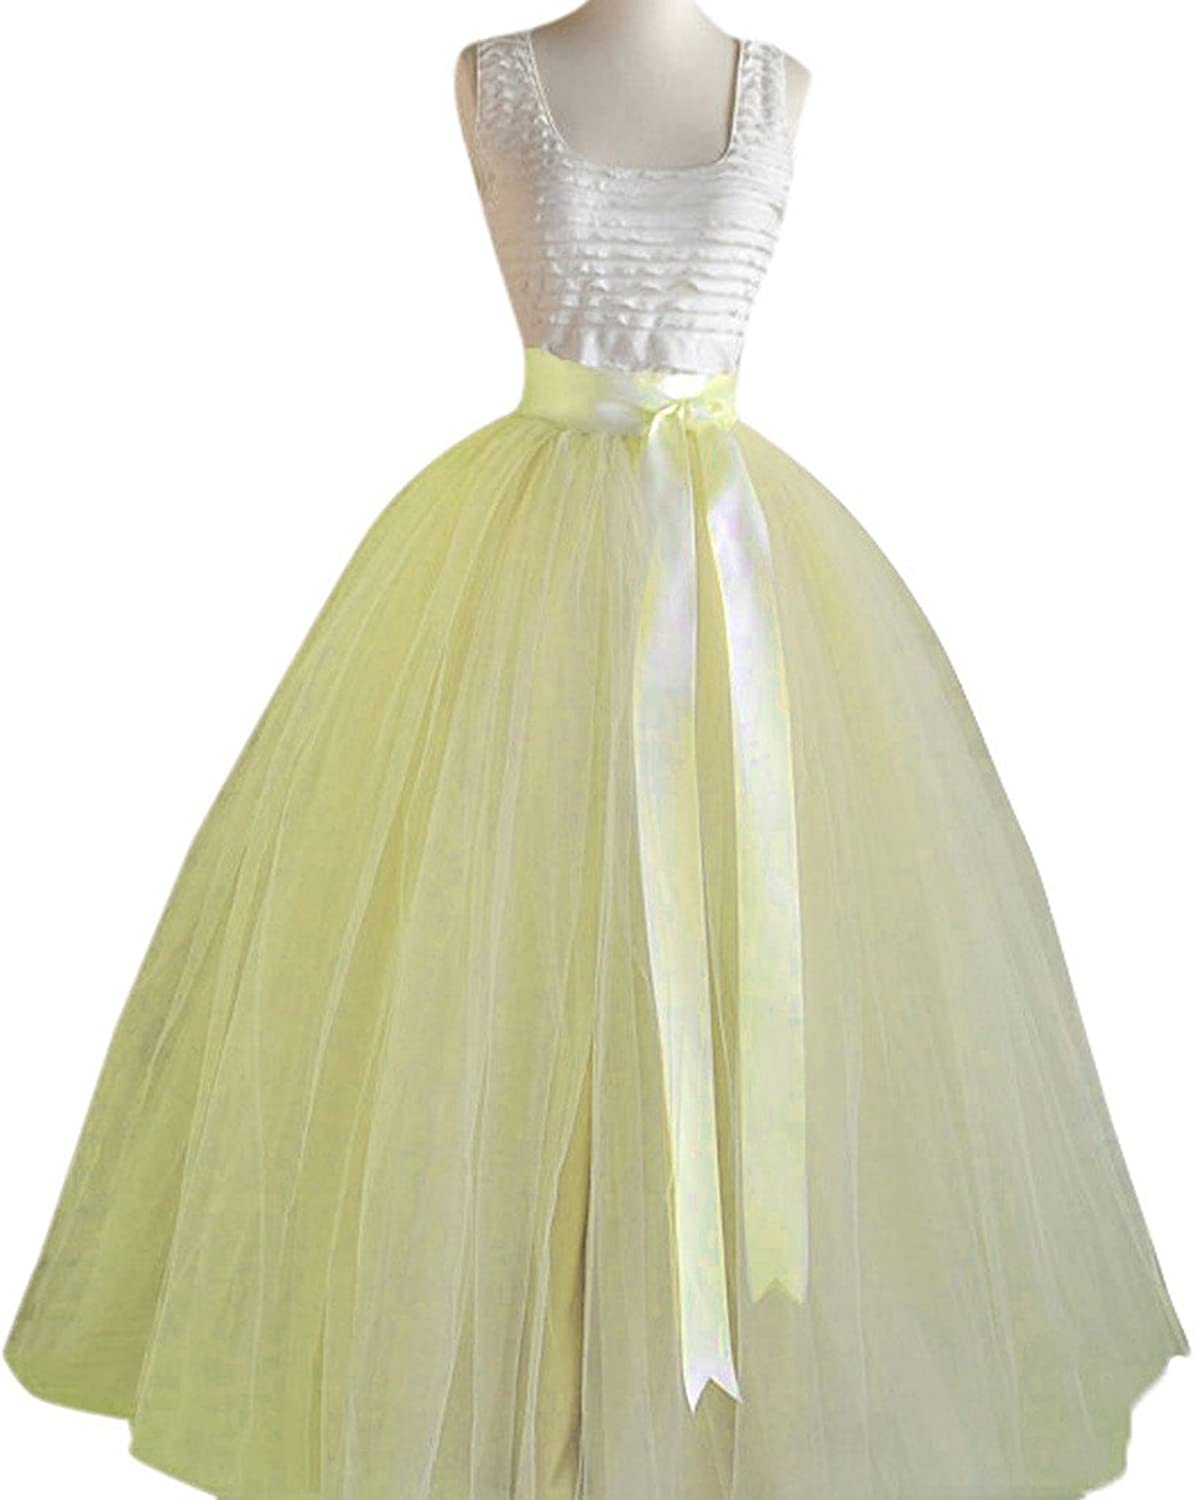 My Super Star Long Tulle Skirts for Women Overlay Wedding Party Skirt XS4X Plus Size Skirts